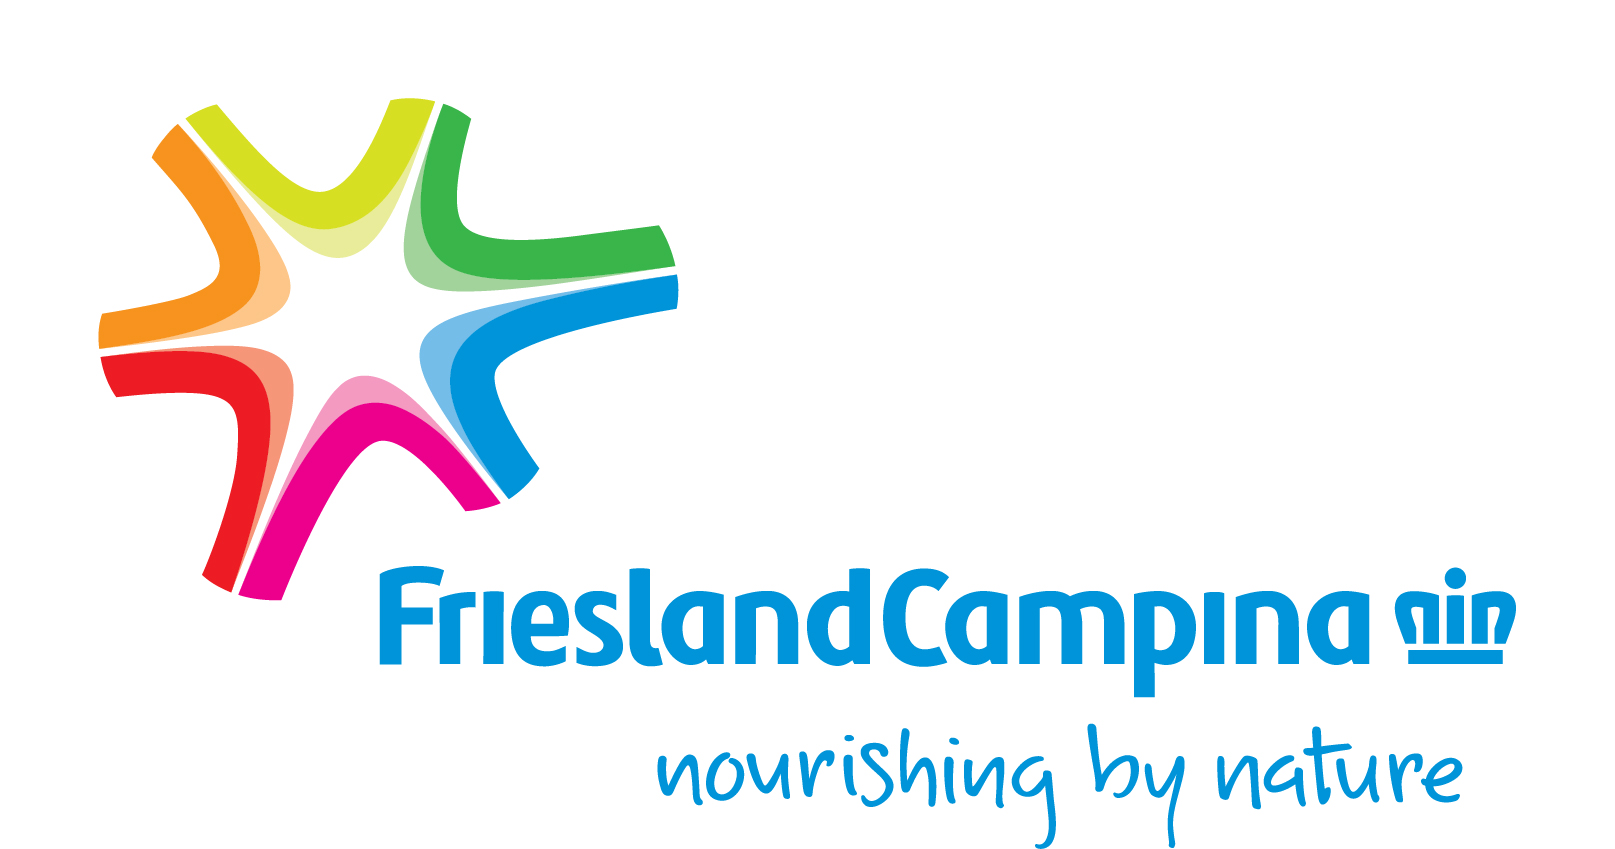 FrieslandCampina_NbN_rgb (004)